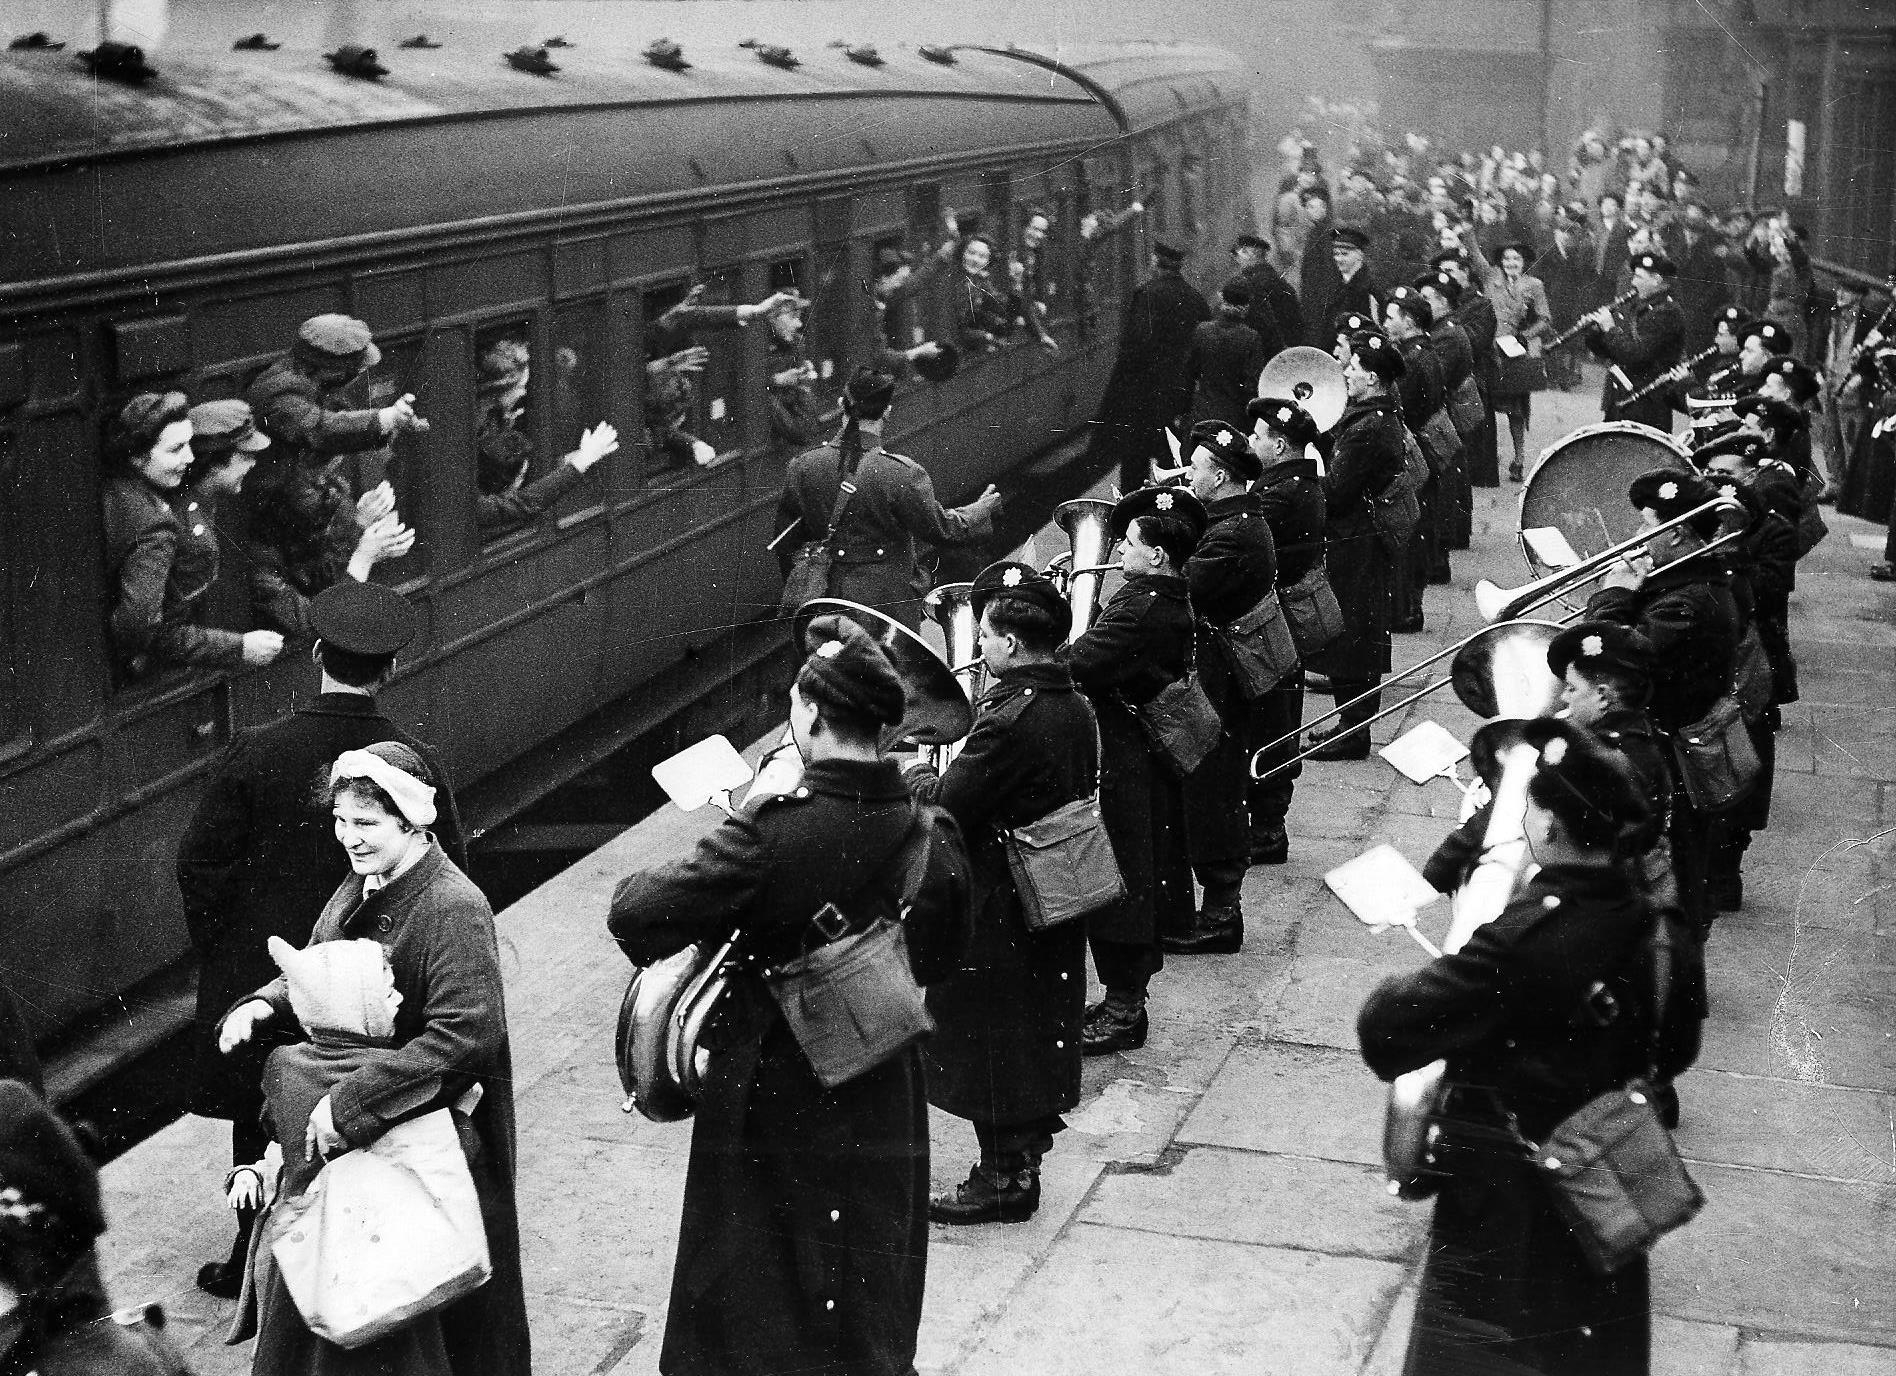 THOSE WERE THE DAYS - 1942: A.T.S. members take their leave of Glasgow in style